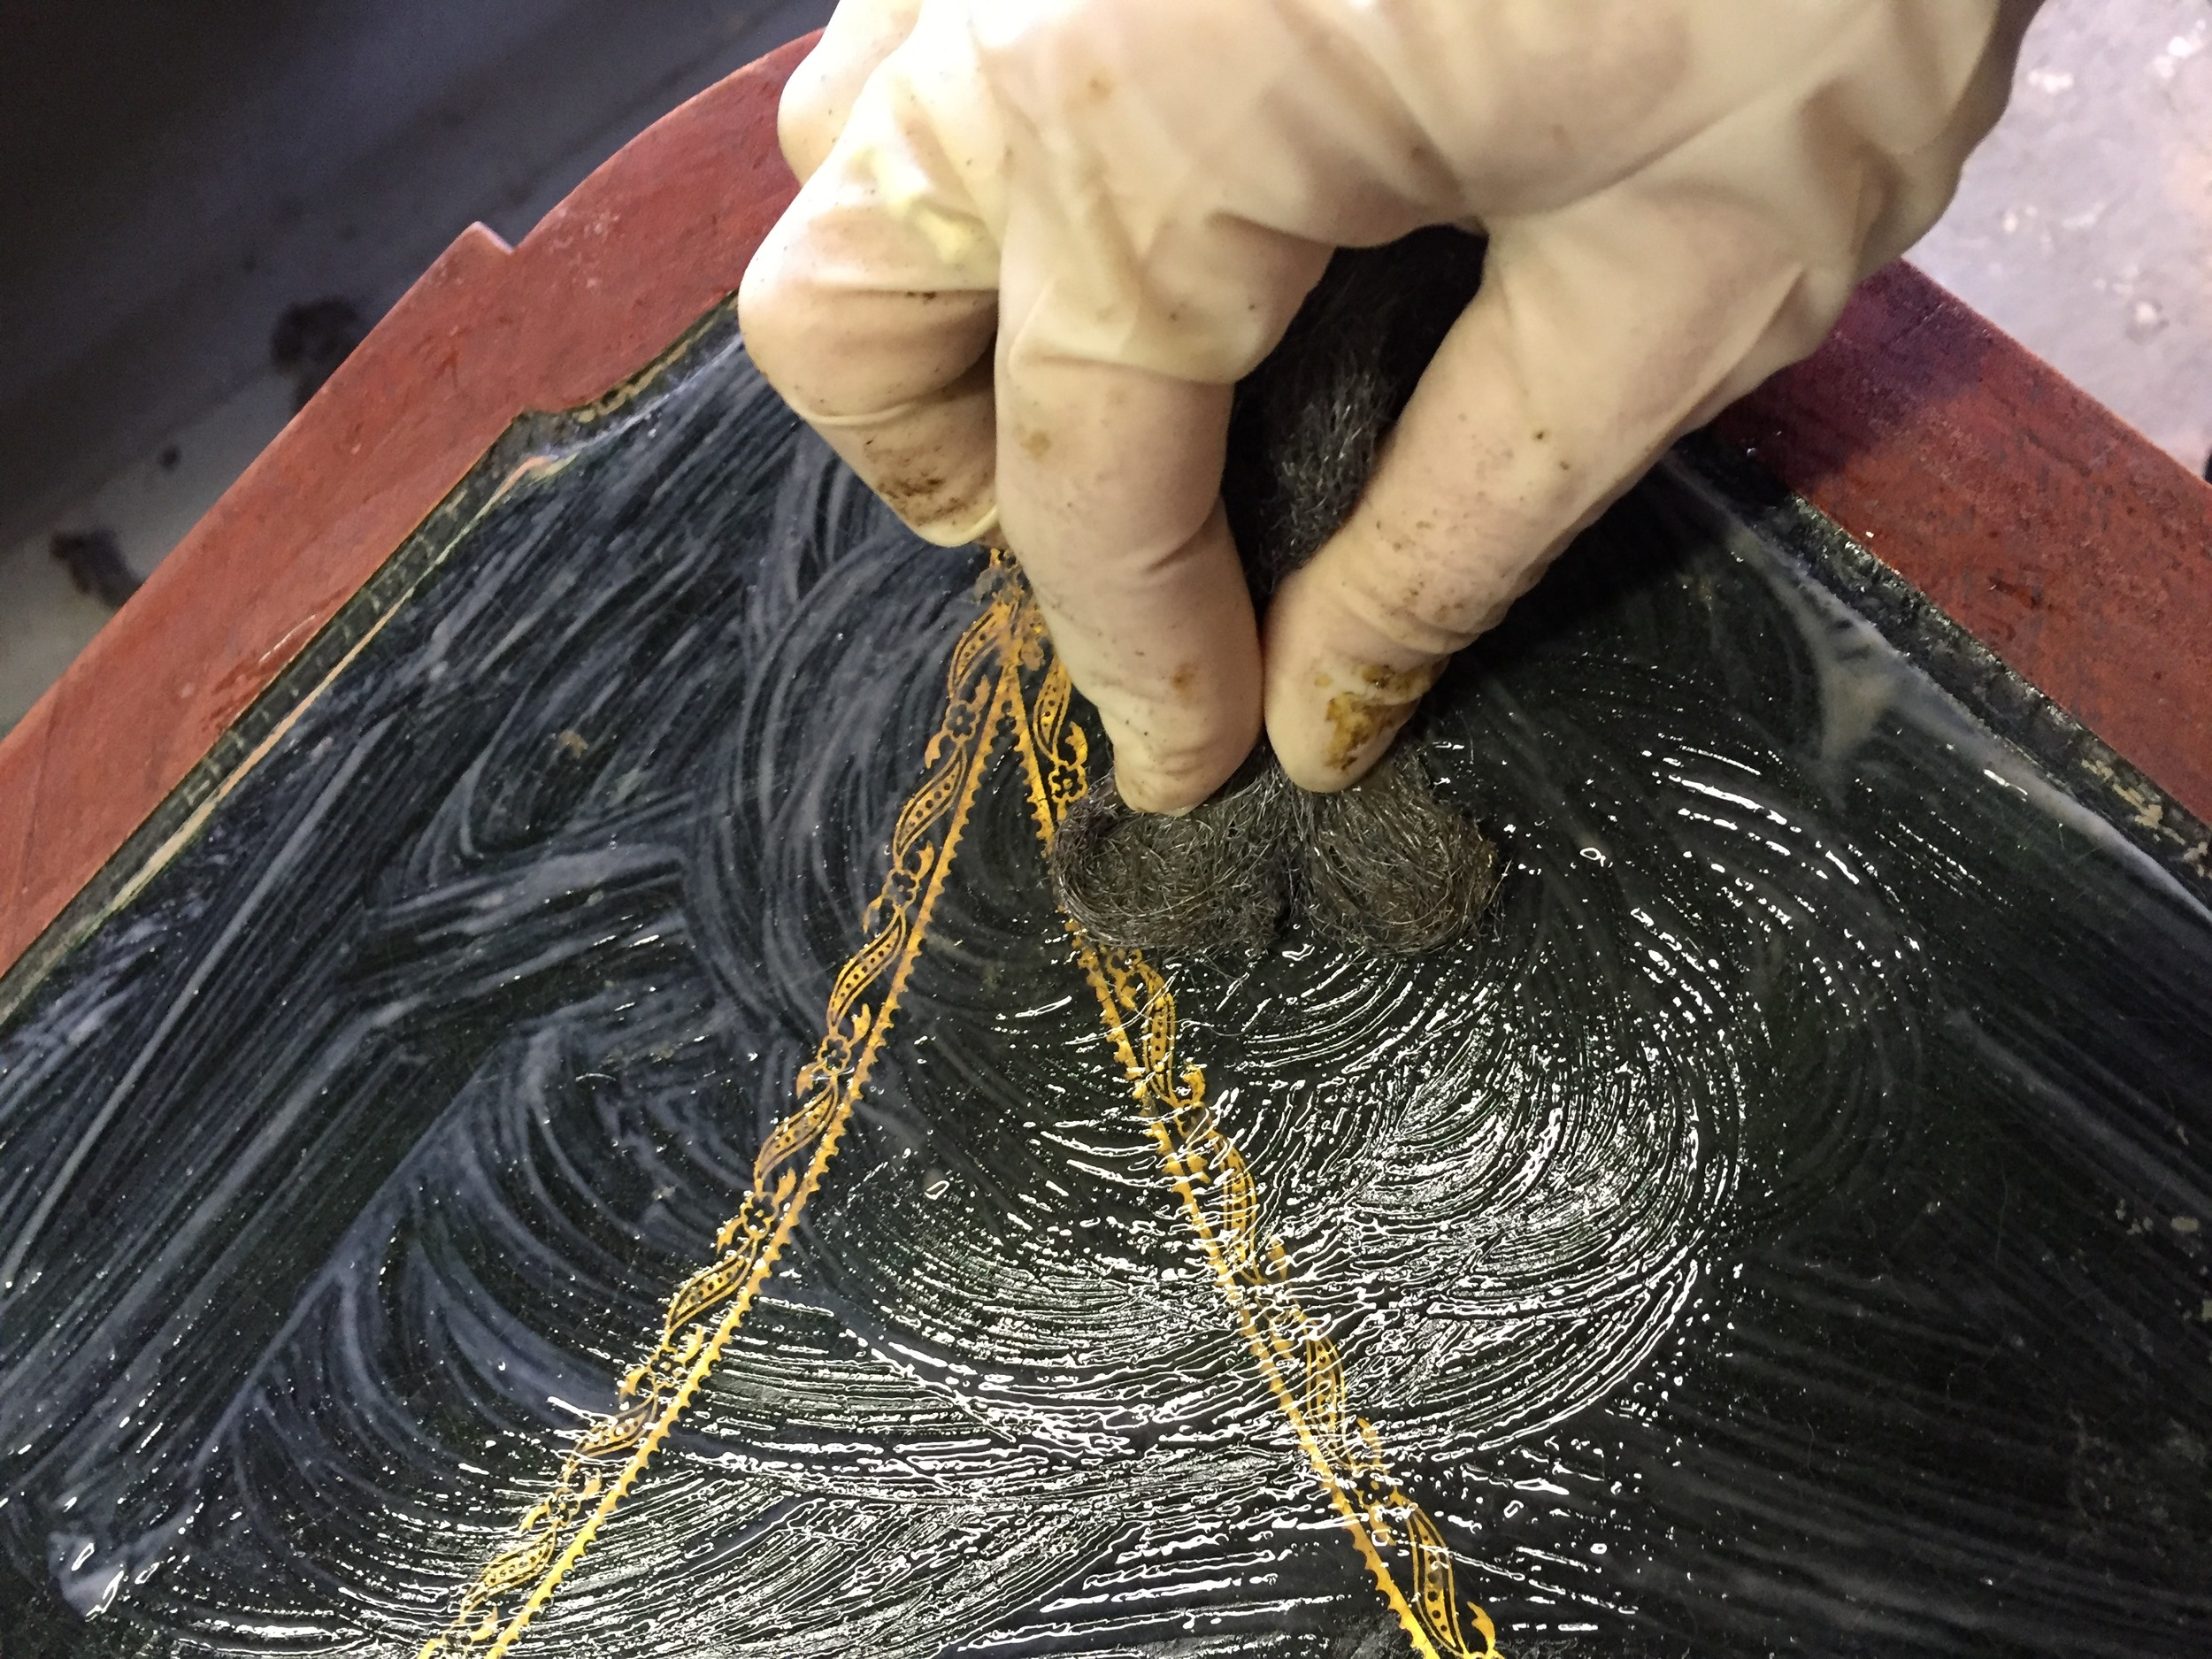 leather cleaner and steel wool